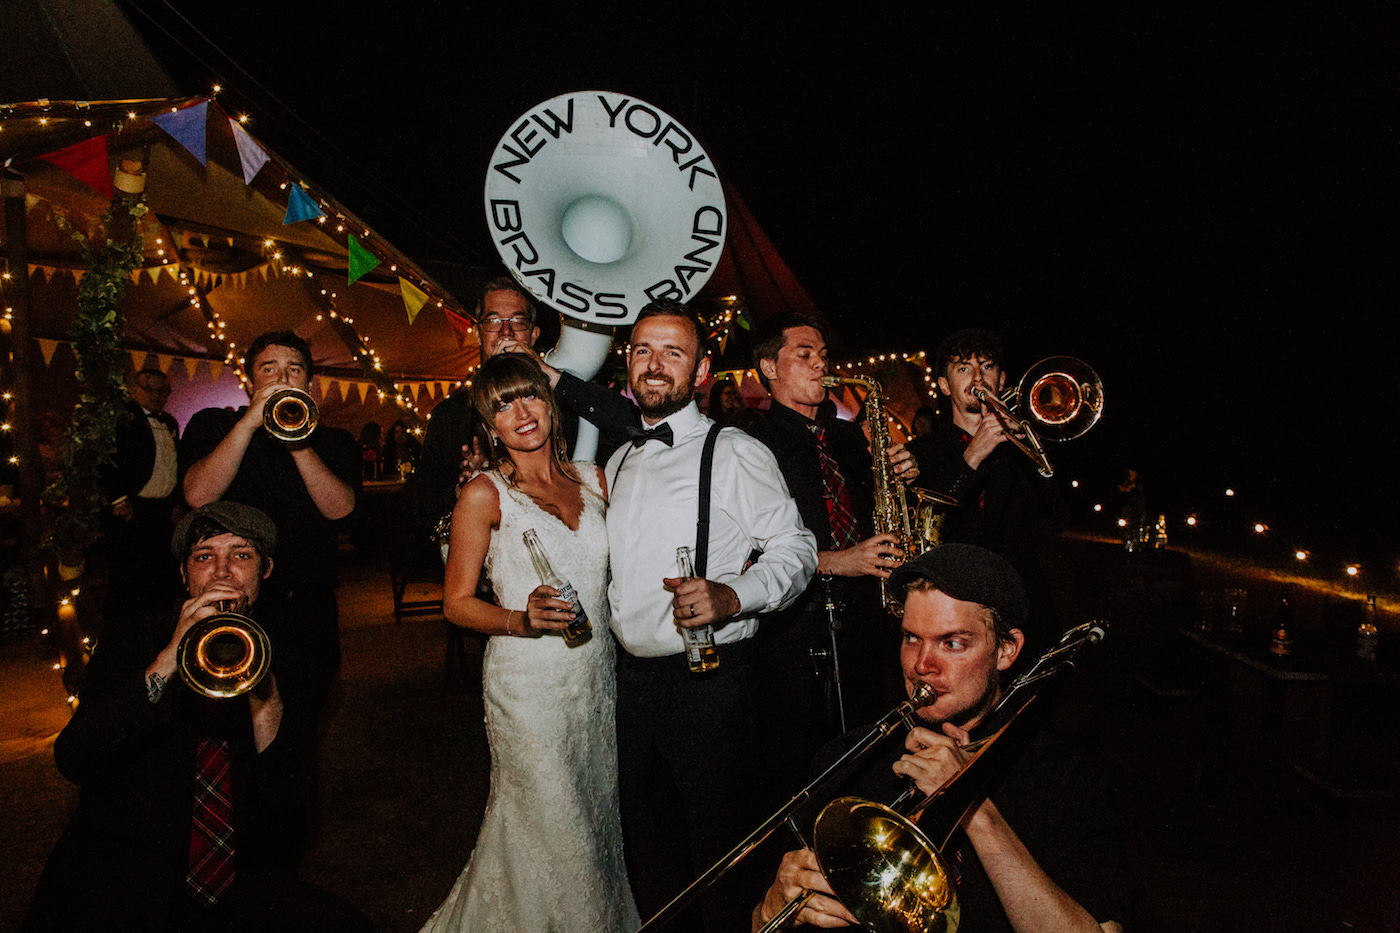 new york brass band wedfest festival wedding